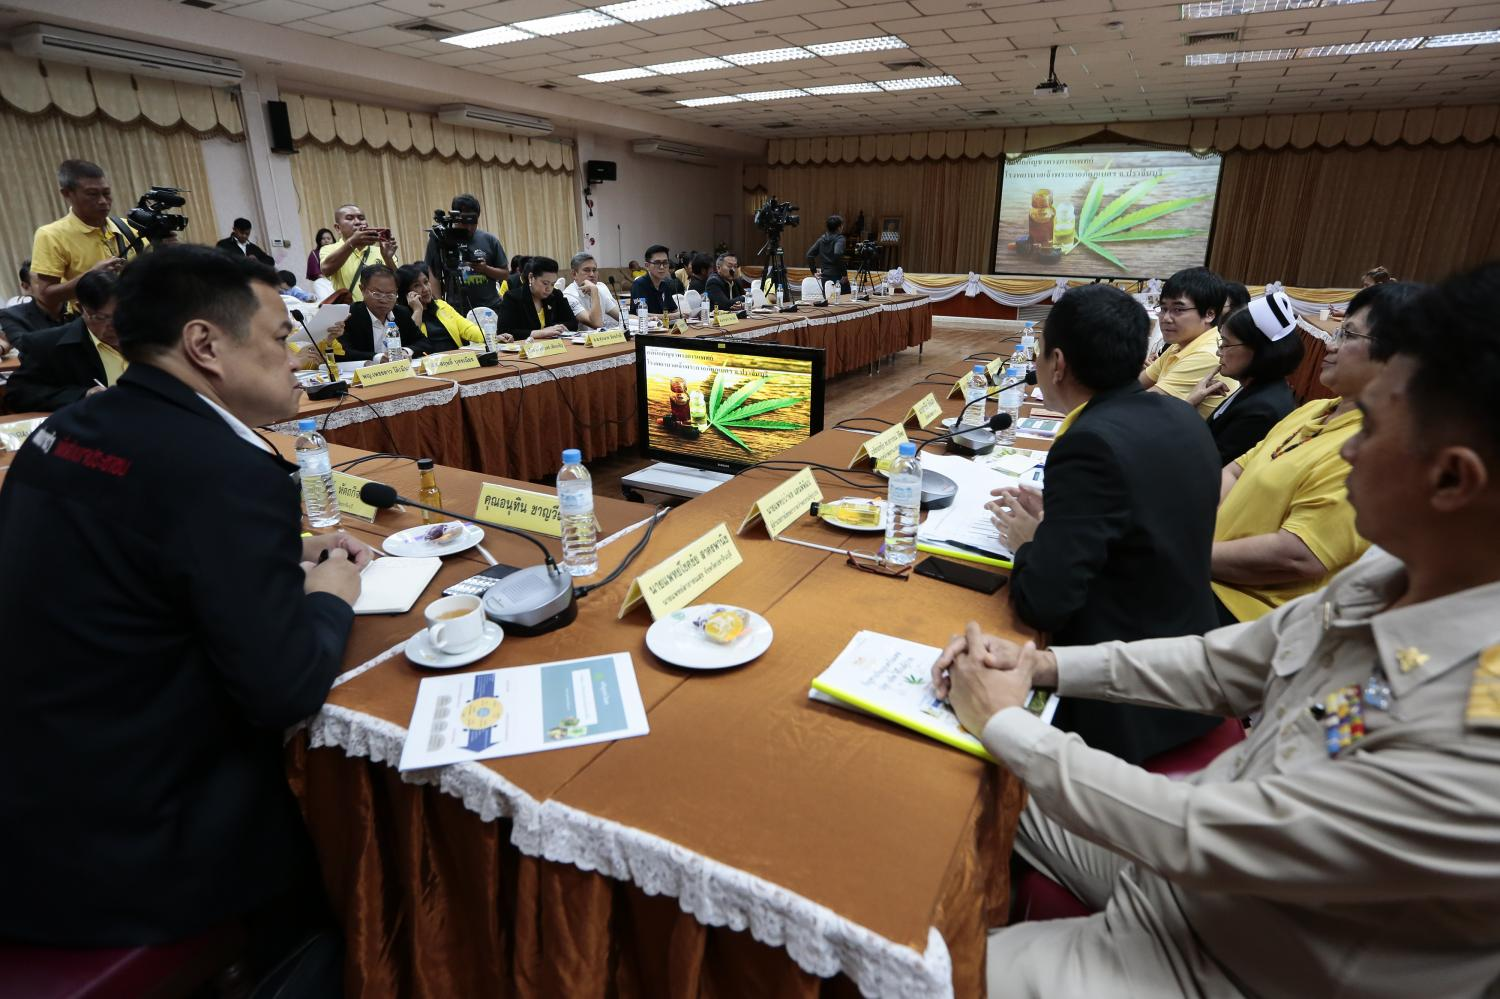 Anutin Charnvirakul, left, leader of the Bhumjaithai Party which is pushing for legal marijuana planting, attends a meeting on its medical uses at Chaopraya Abhaiphubejhr Hospital in Prachin Buri. On Friday, the hospital showed visitors its cannabis plantation and techniques to extract marijuana oil. Patipat Janthong